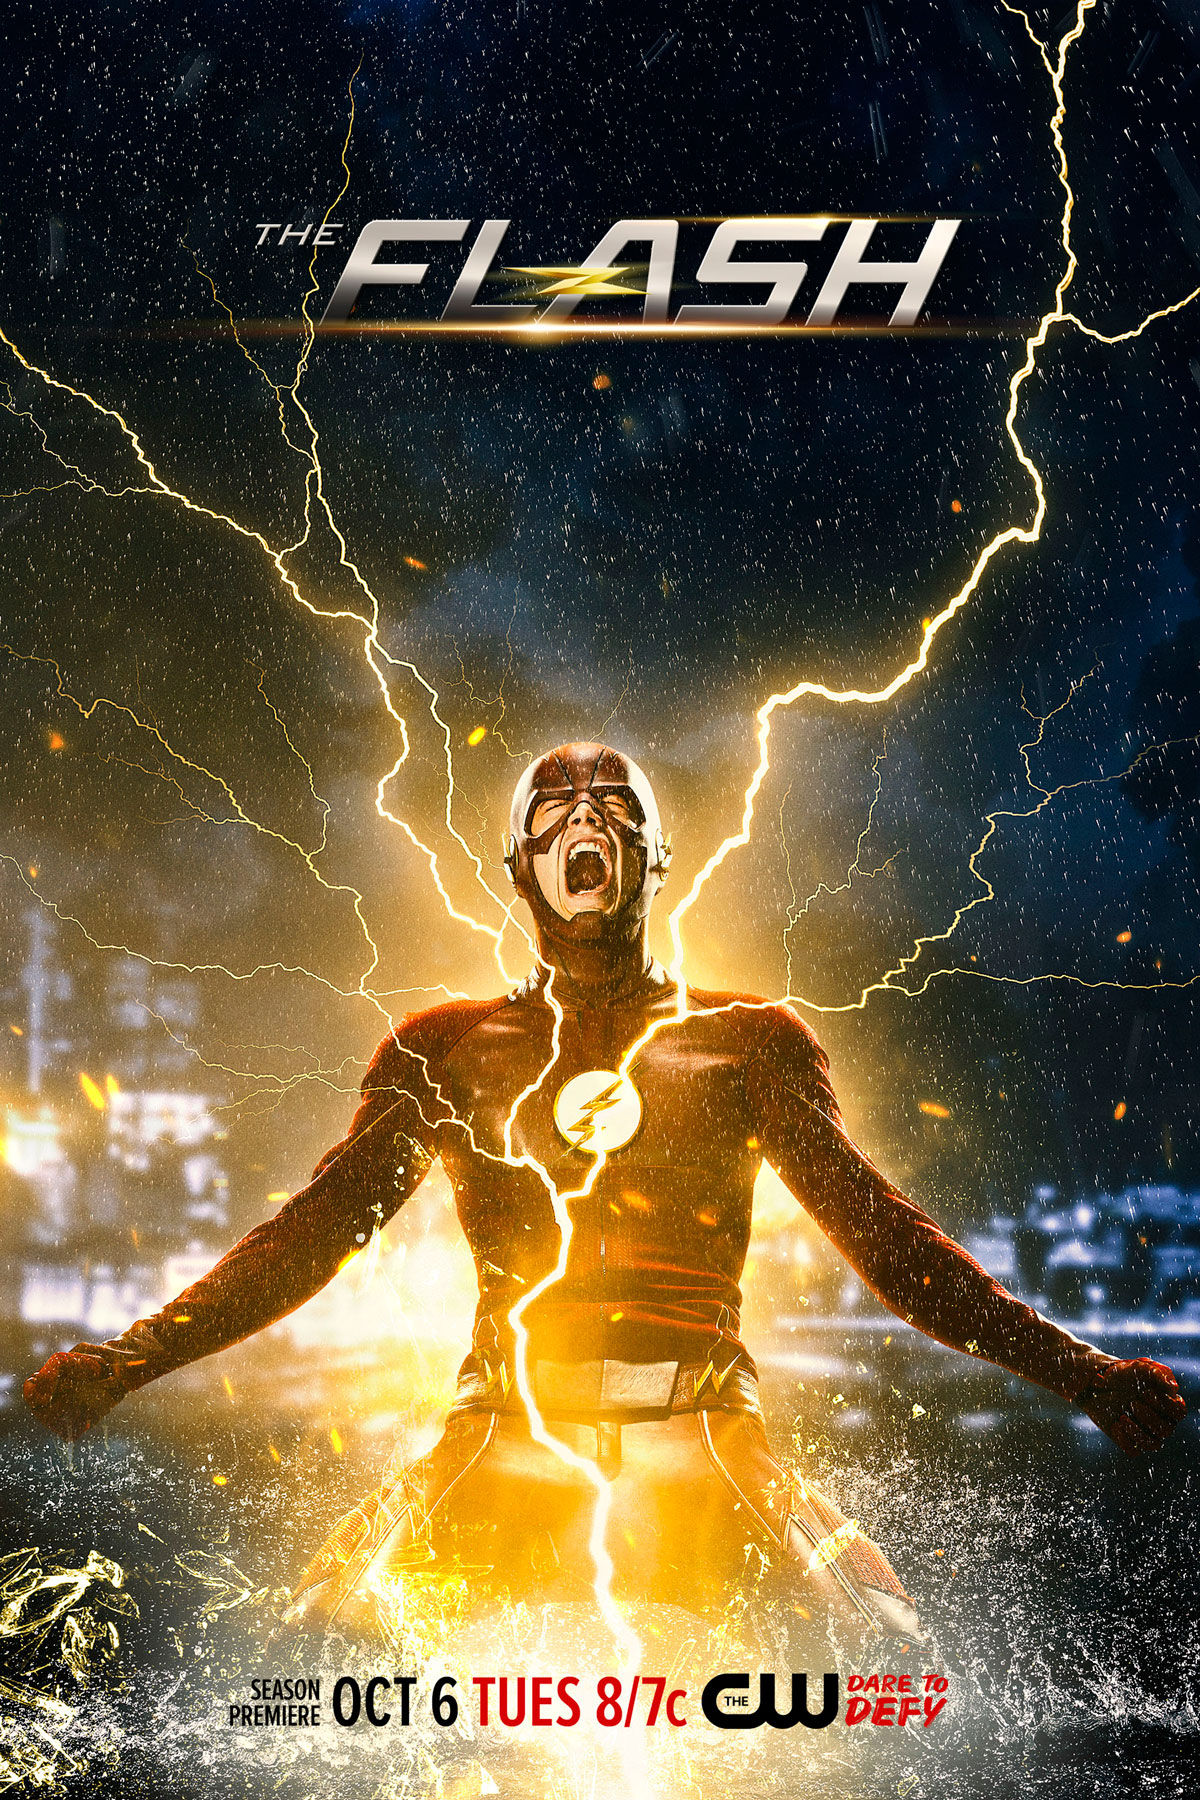 The flash season 2 promo amp images highlight atom smasher and more